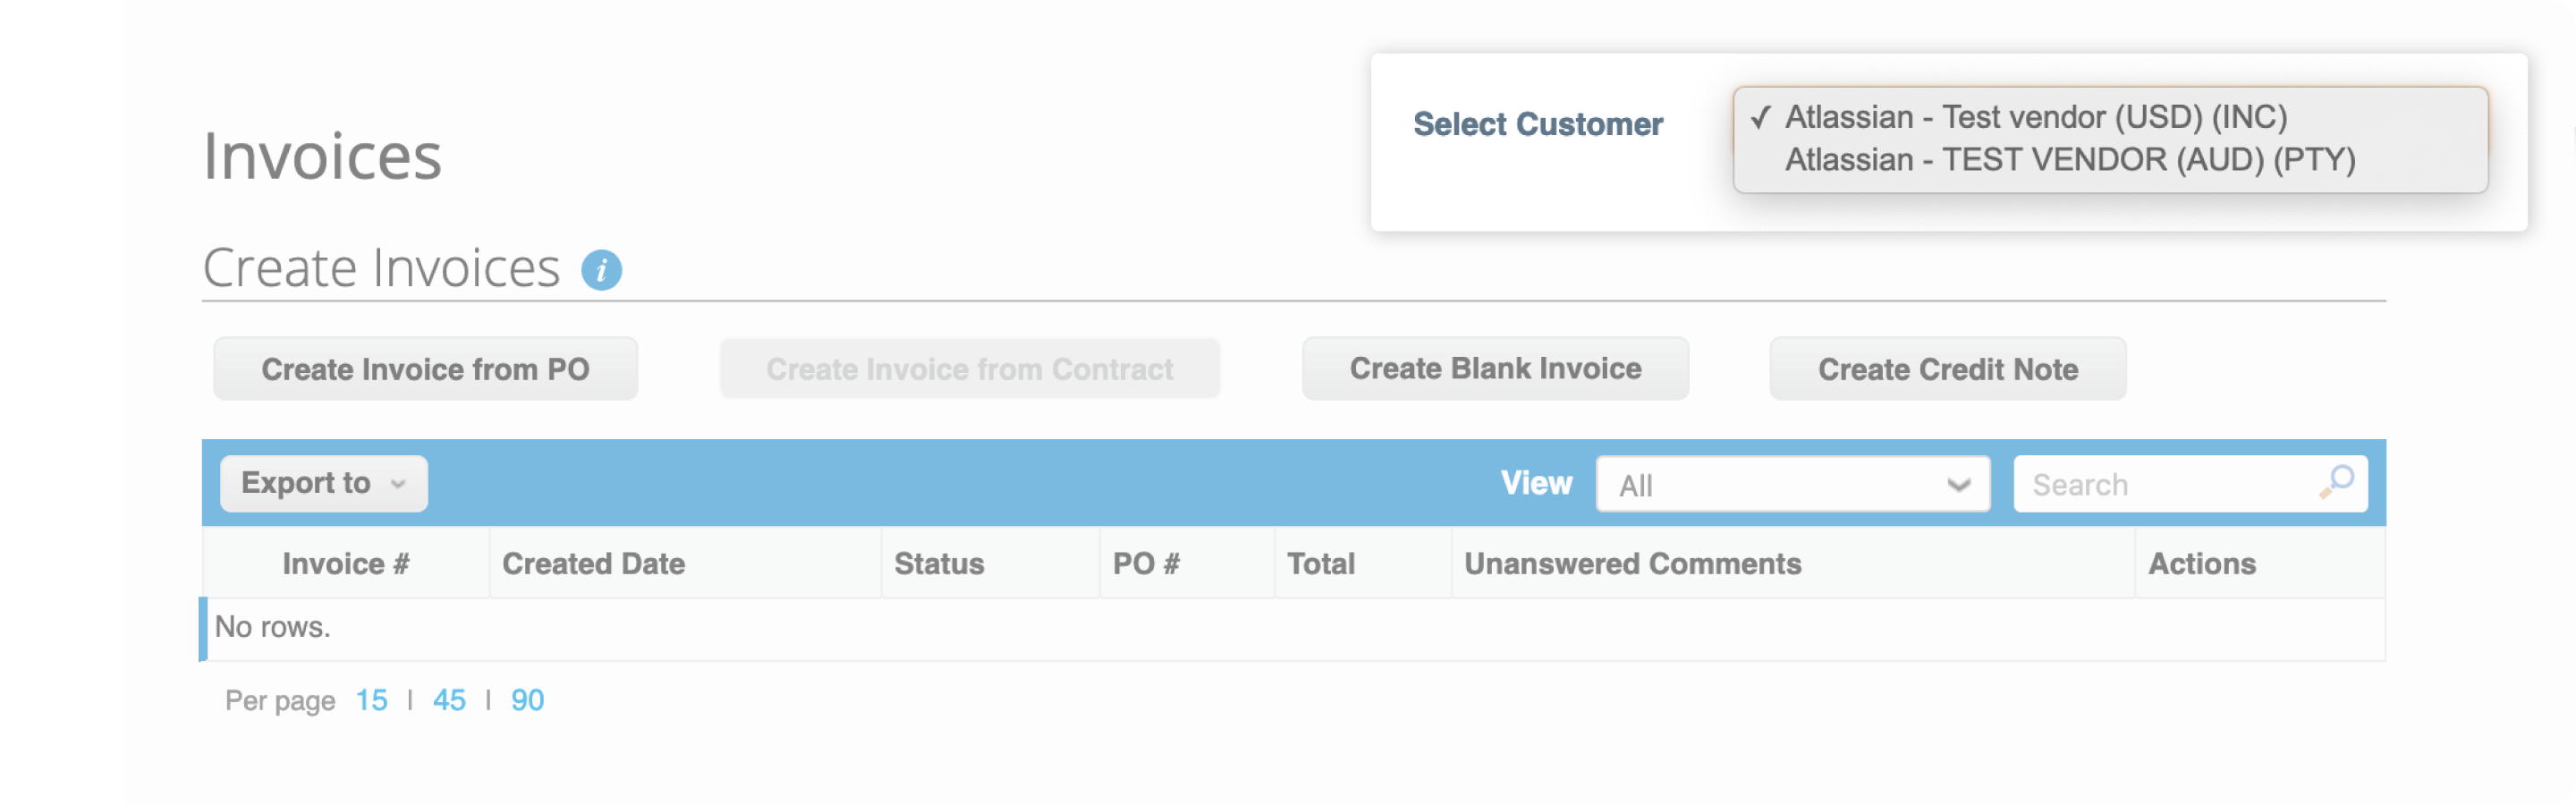 Supplier needs to go to Orders tab and search for the PO to be used. Click the yellow coins to start creating an invoice